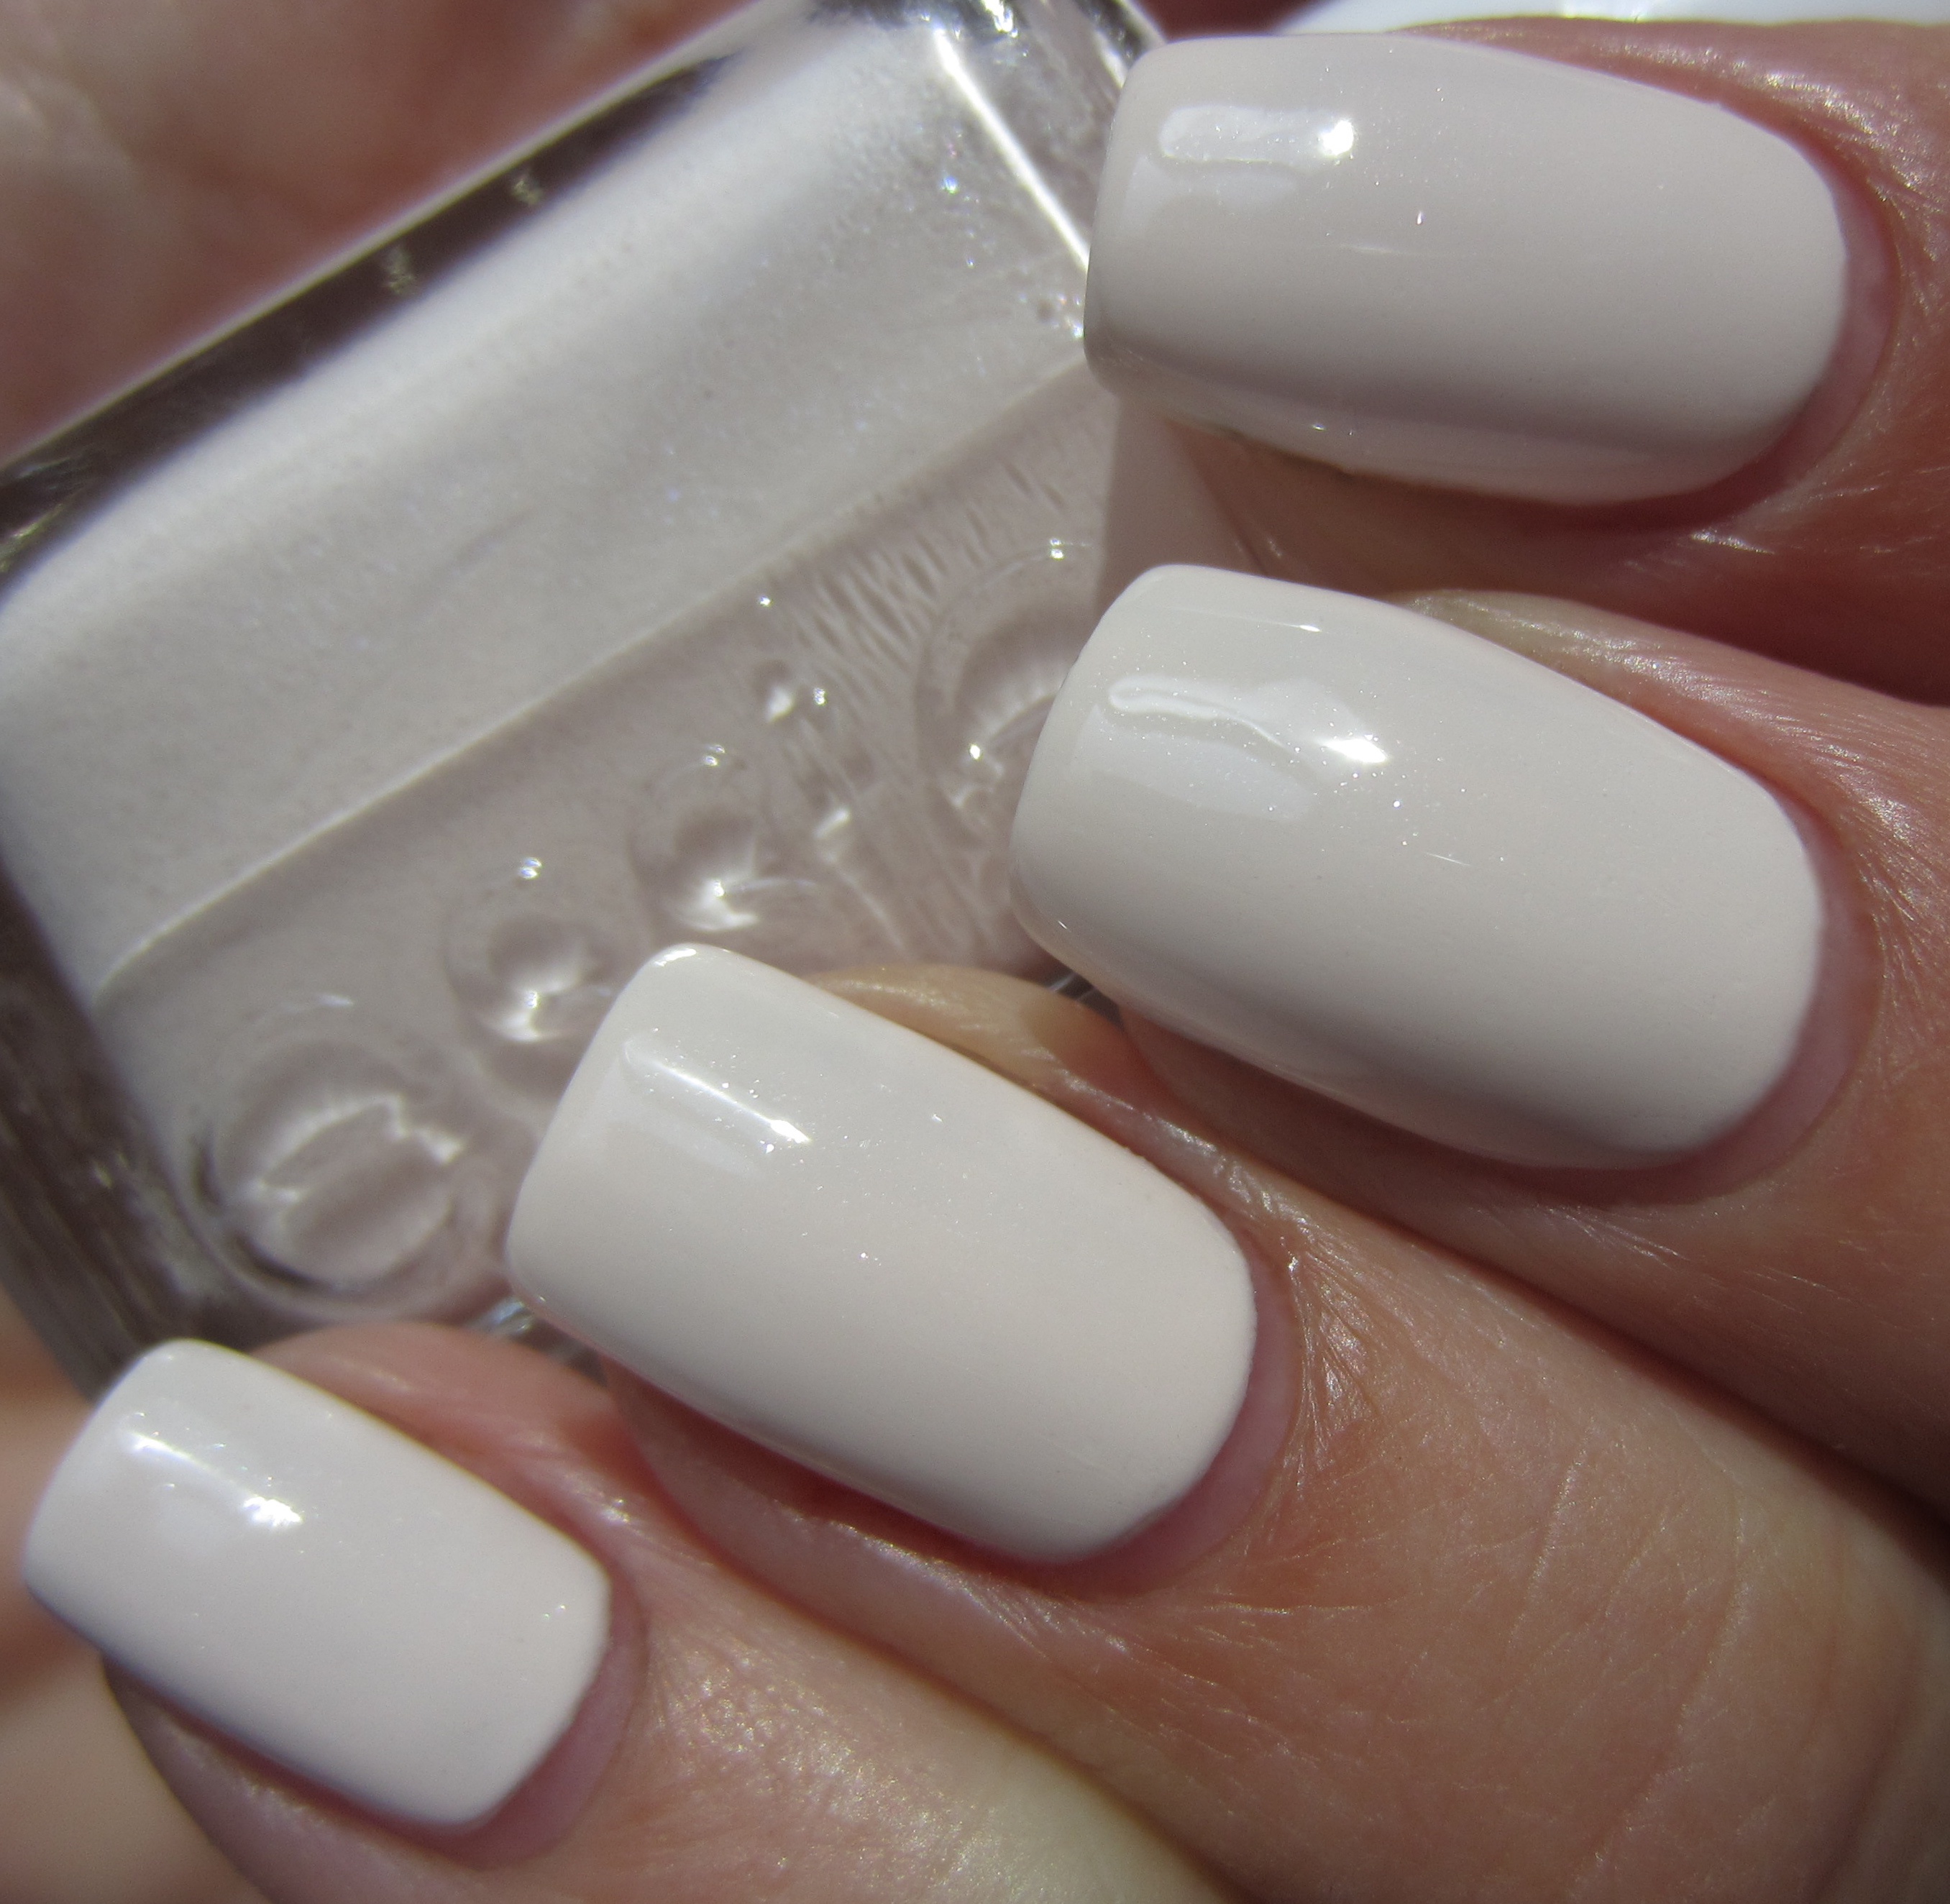 Essie White Nail Polish Swatches - Absolute cycle